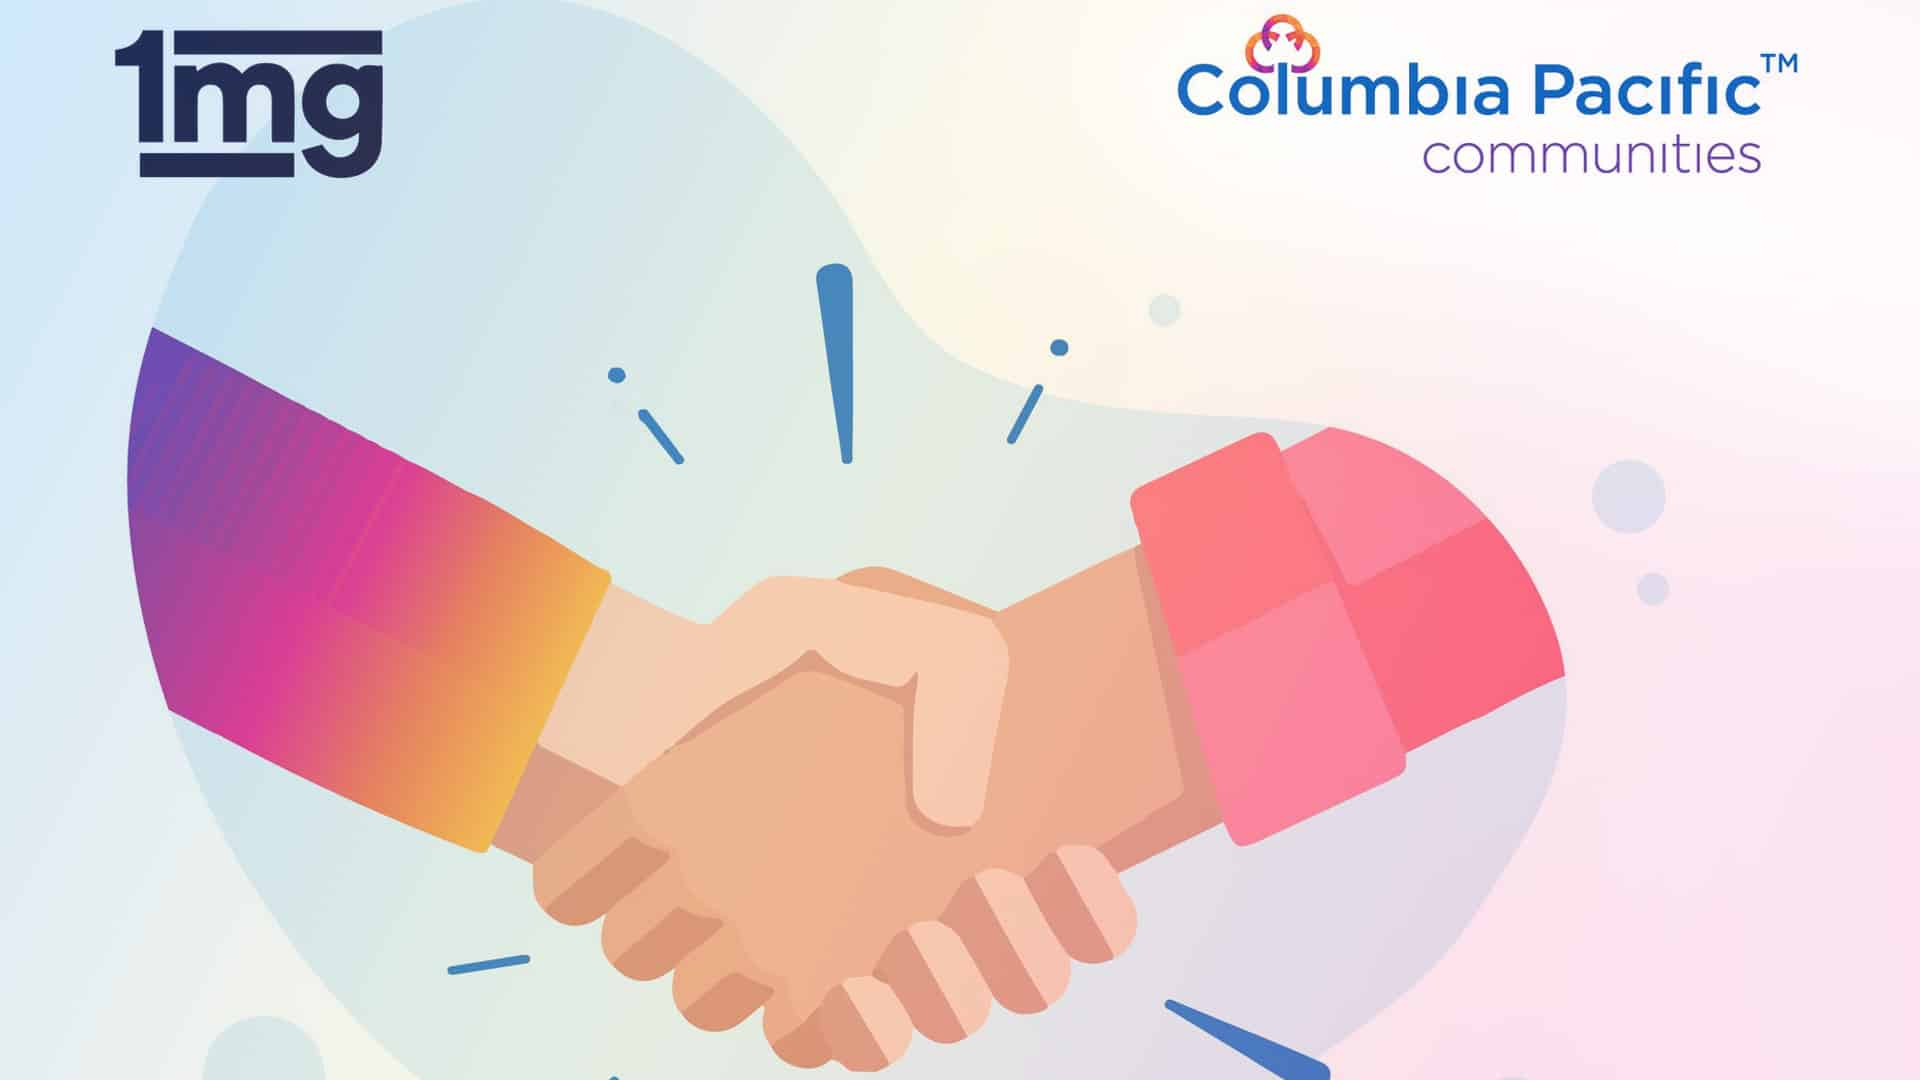 Columbia Pacific Communities partners with 1mg to extend healthcare benefits to senior residents